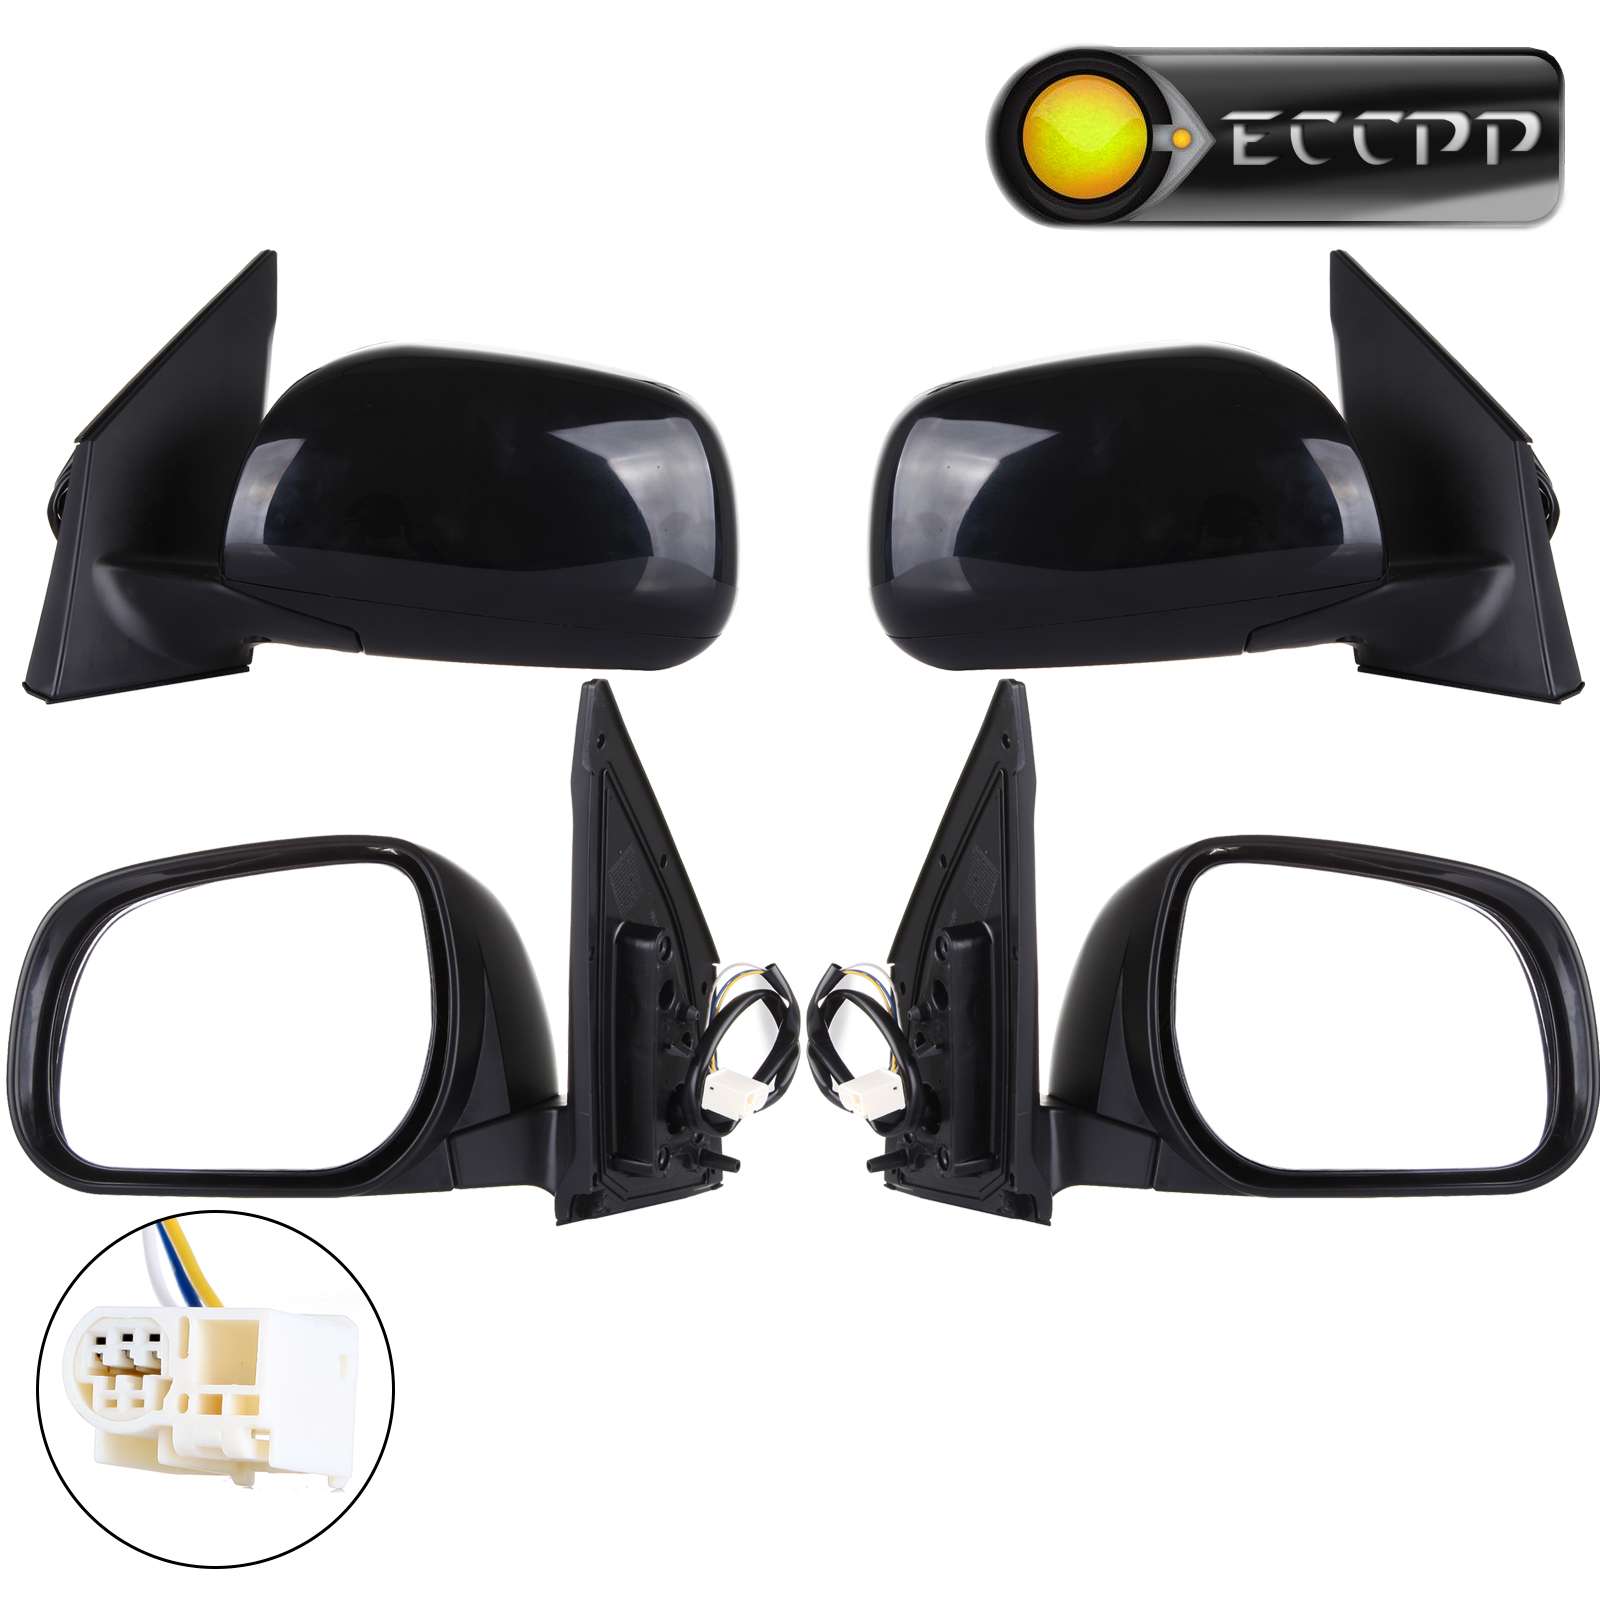 Eccpp power driver and passenger side view mirrors left right rear view mirror pair set